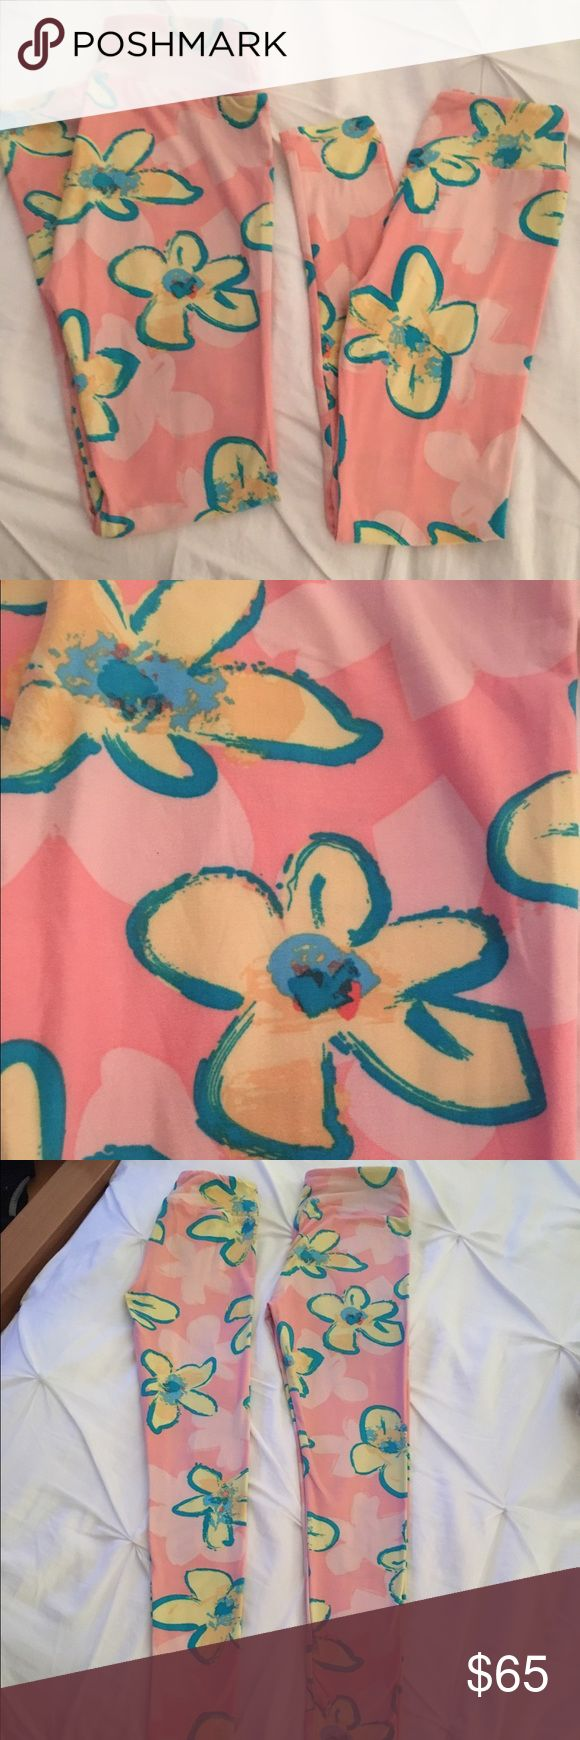 LuLaRoe Mommy & Me Leggings--OS & Tween Set LuLaRoe Mommy & Me Legging Set Comes with both pairs Sizes: OS & Tween Pink Floral Pattern Perfect for Easter or Mother's Day!!!  Only worn once!!! Great Condition!  No pilling, no holes, no stains, no signs of wearing.   No Trades Smoke Free & Pet Free Home LuLaRoe Pants Leggings